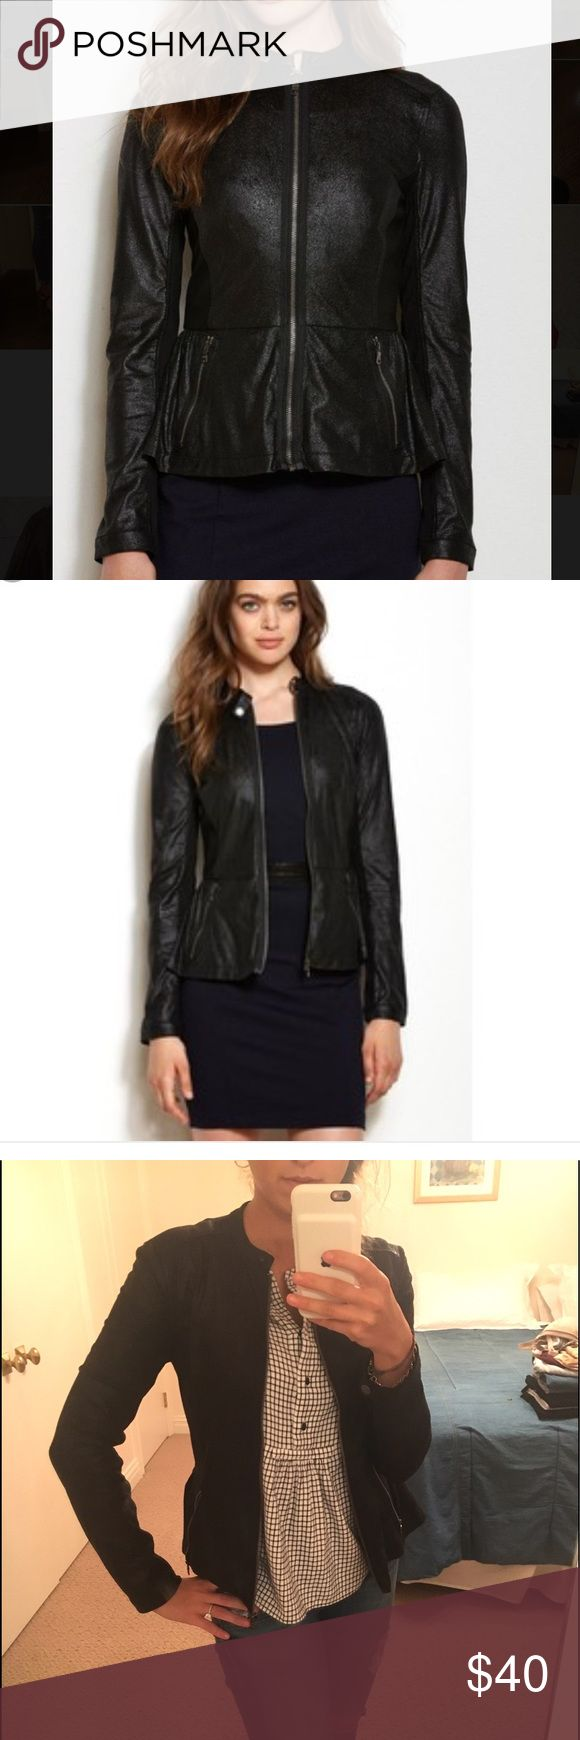 Faux Leather Peplum Jacket Black Faux leather peplum jacket looks really great on, and was worn only once! A/X Armani Exchange Jackets & Coats